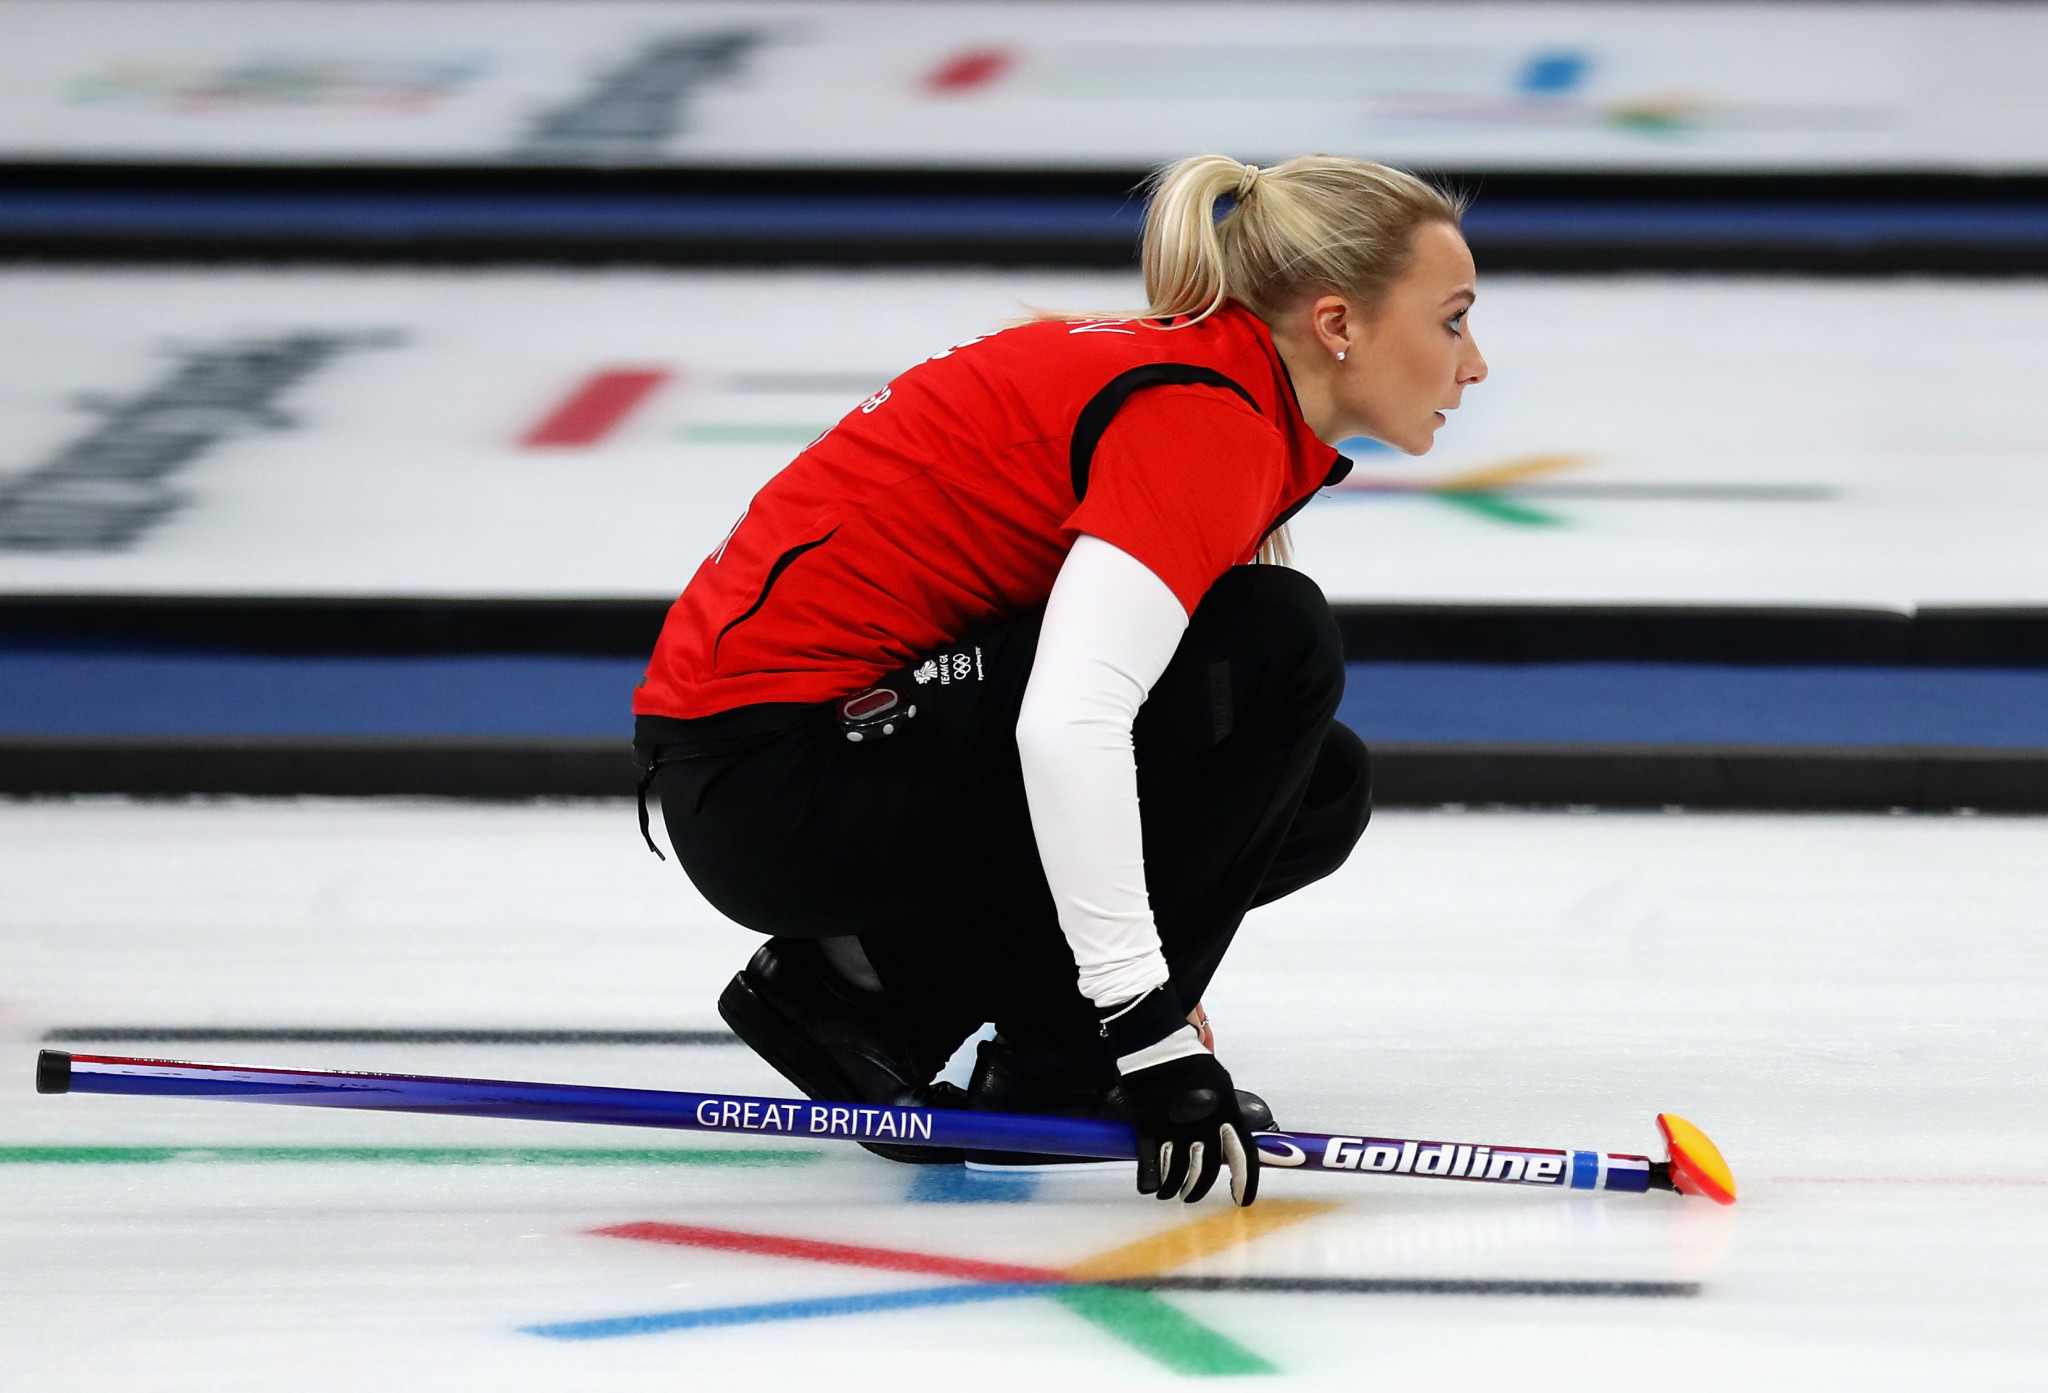 British curler Anna Sloan has decided to take a career break ahead of the 2022 Winter Olympic Games in Beijing ©Getty Images